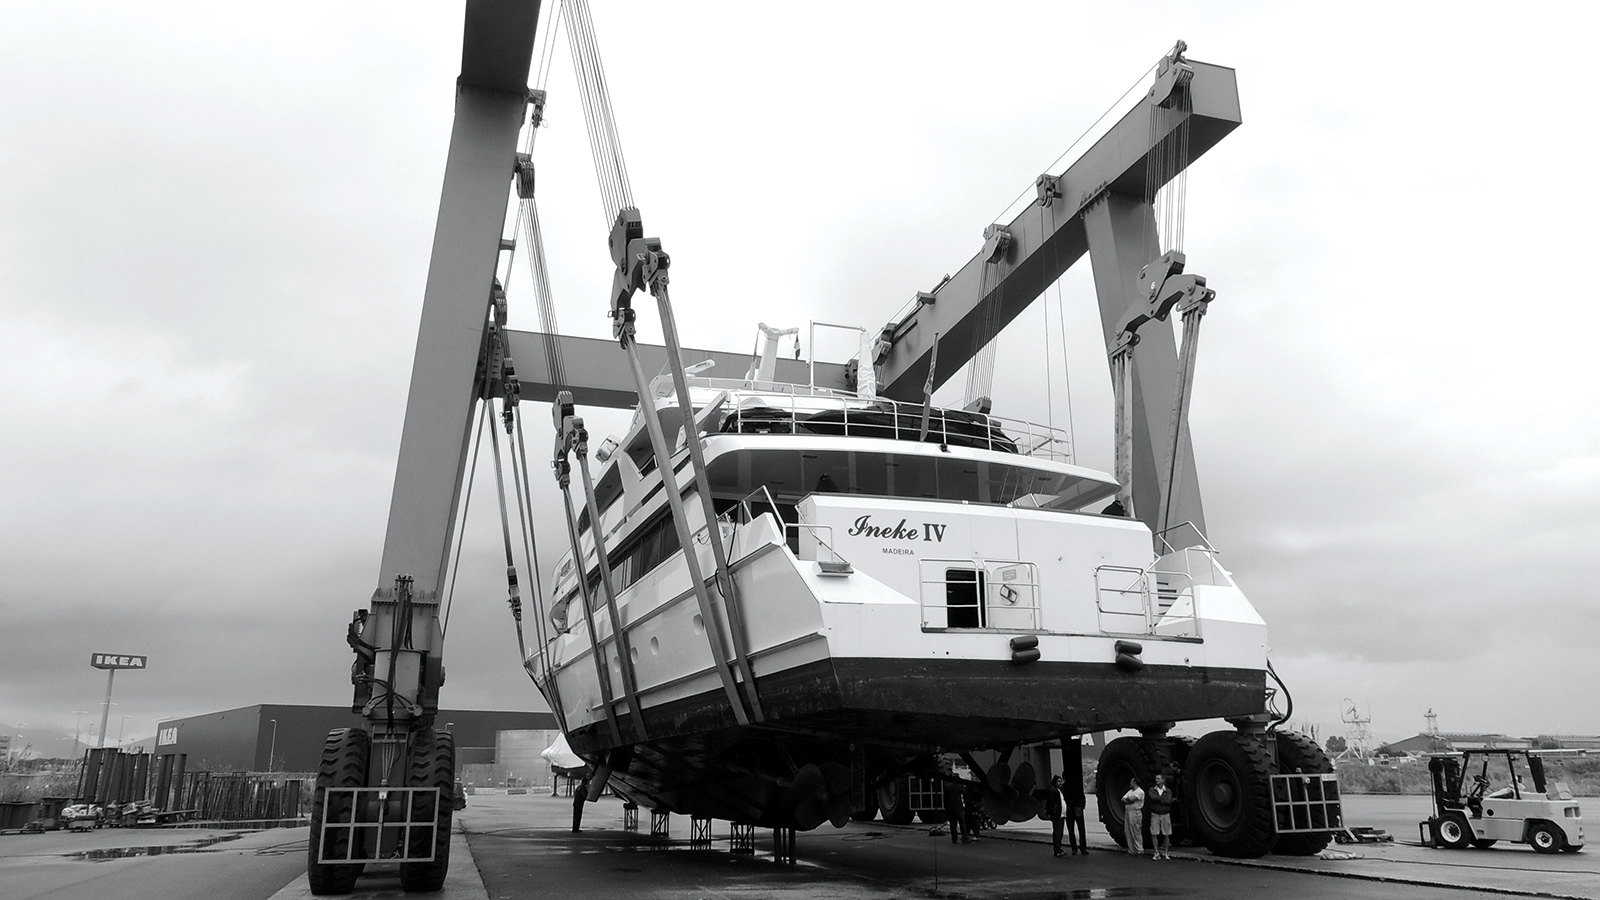 the-haul-out-of-the-lloyds-superyacht-ineke-iv